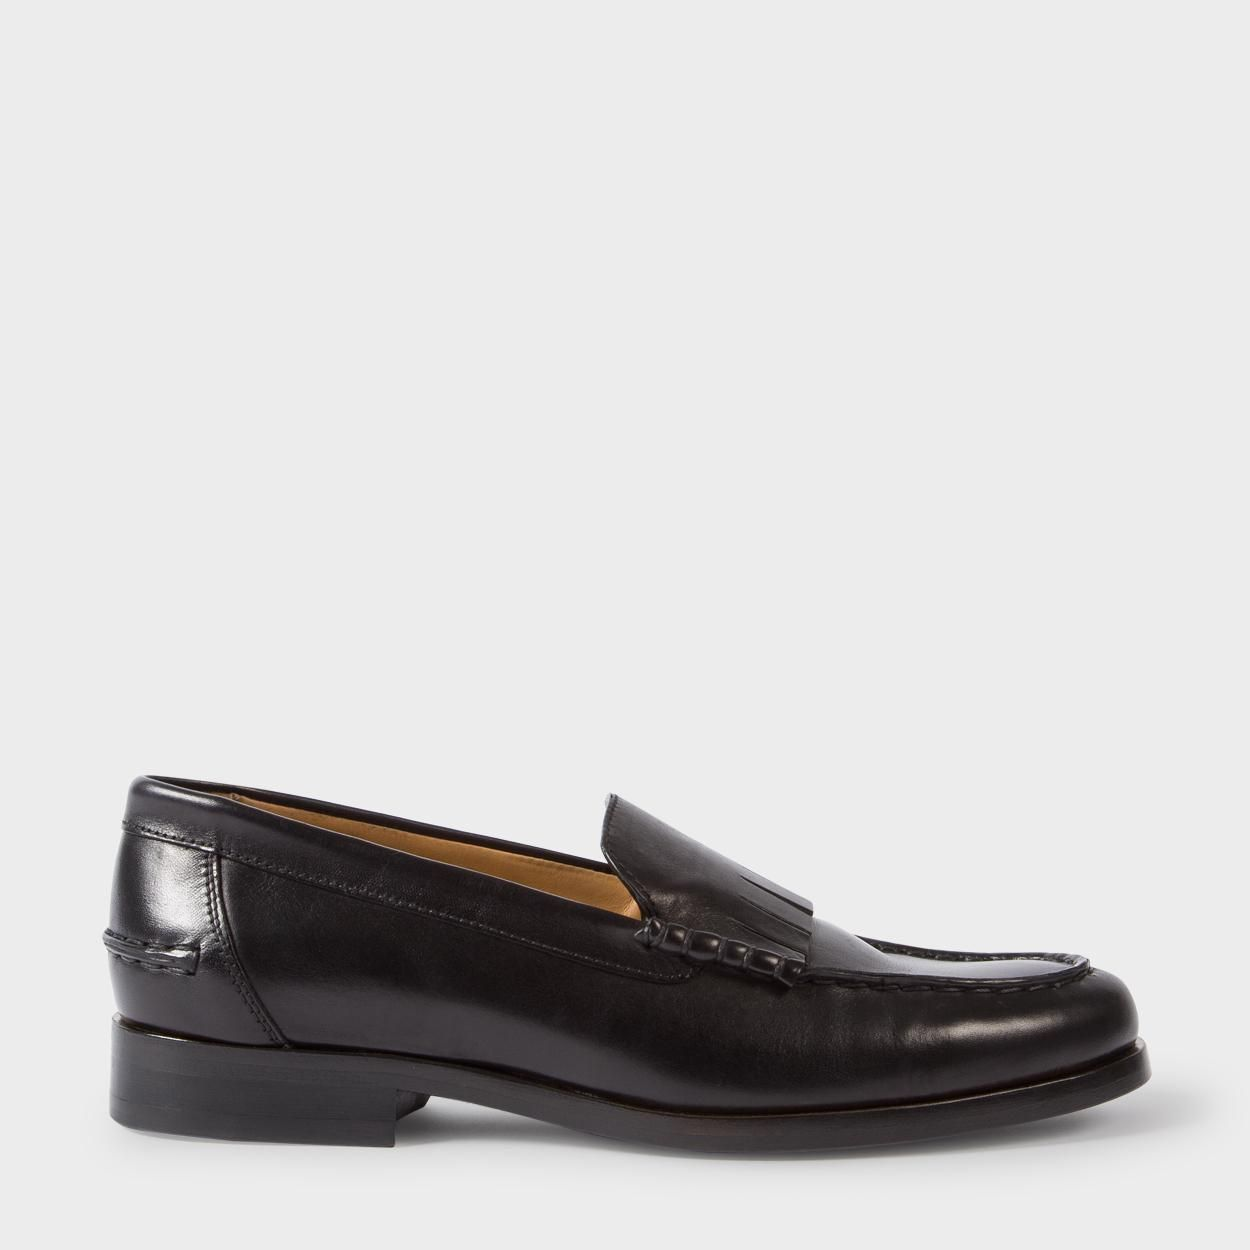 Black lennox fringe loafers buy cheap nicekicks cheap exclusive sale pay with paypal outlet free shipping buy cheap from china U3IaoUA2e